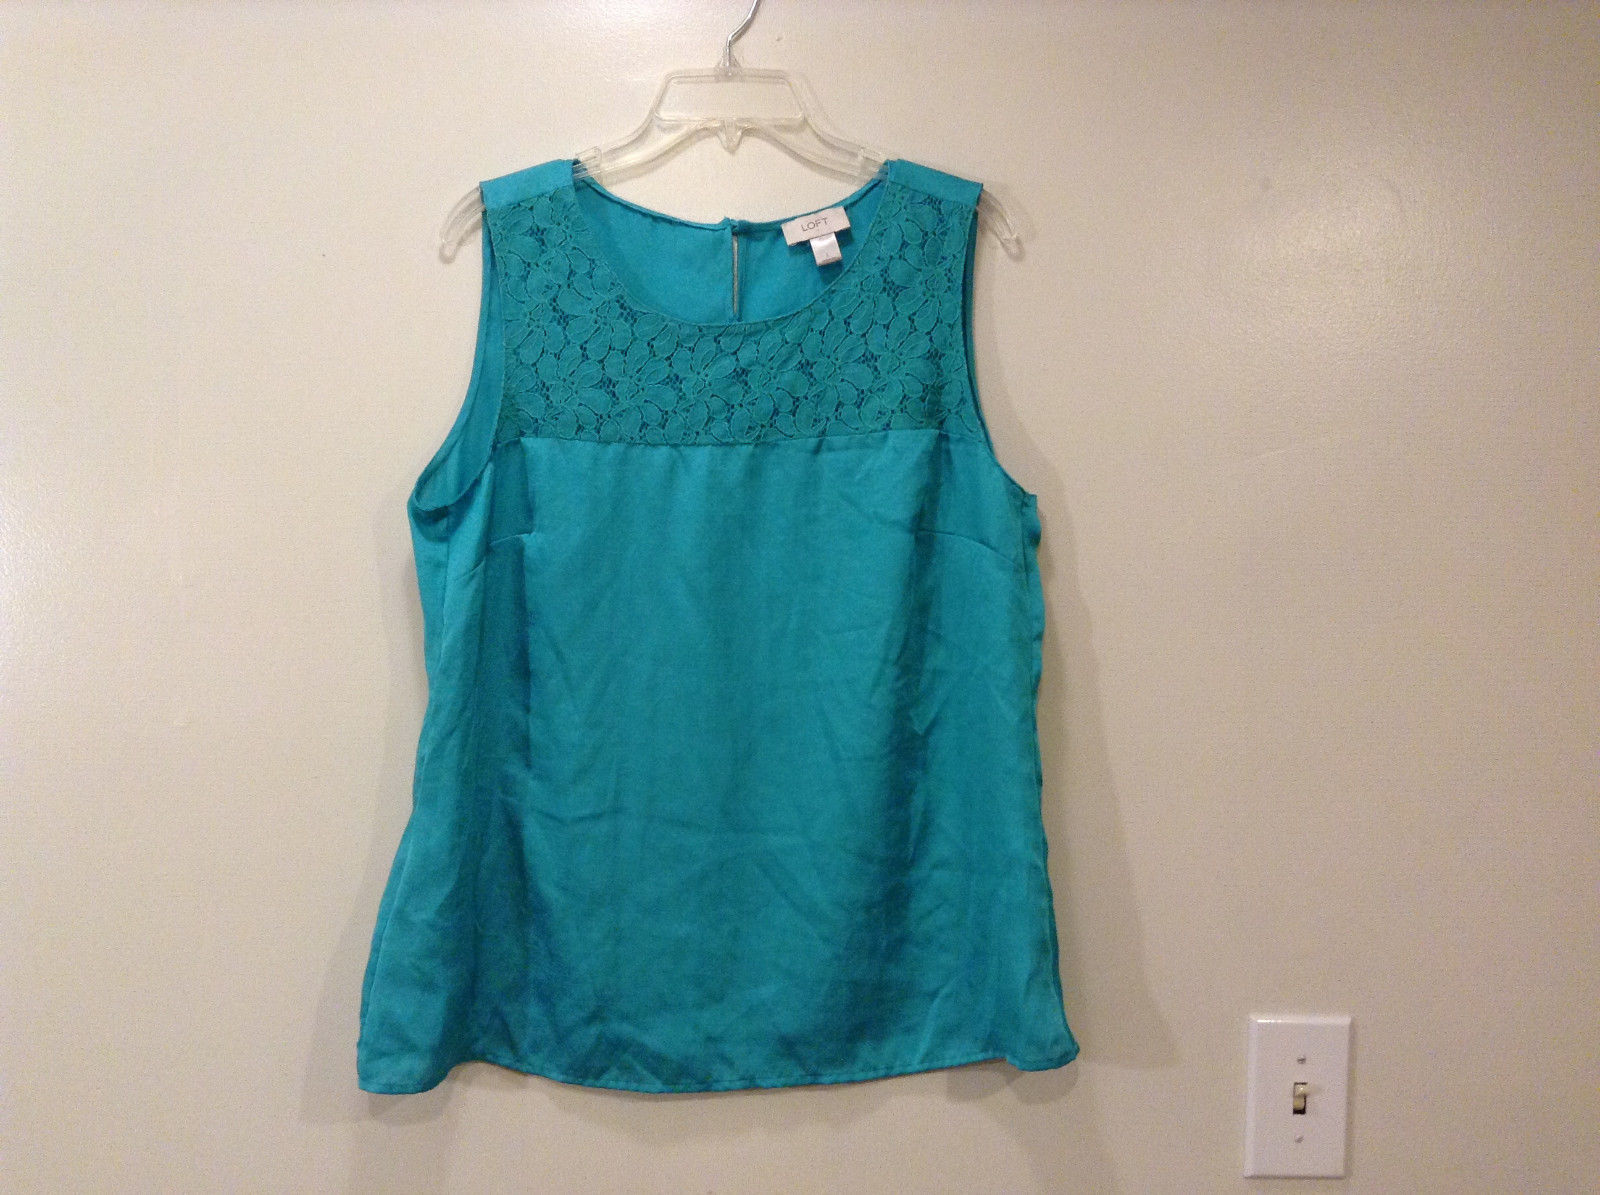 Ann Taylor LOFT Women's Size L Top Sleeveless Scoop Shell Aqua Blue Lace Yoke